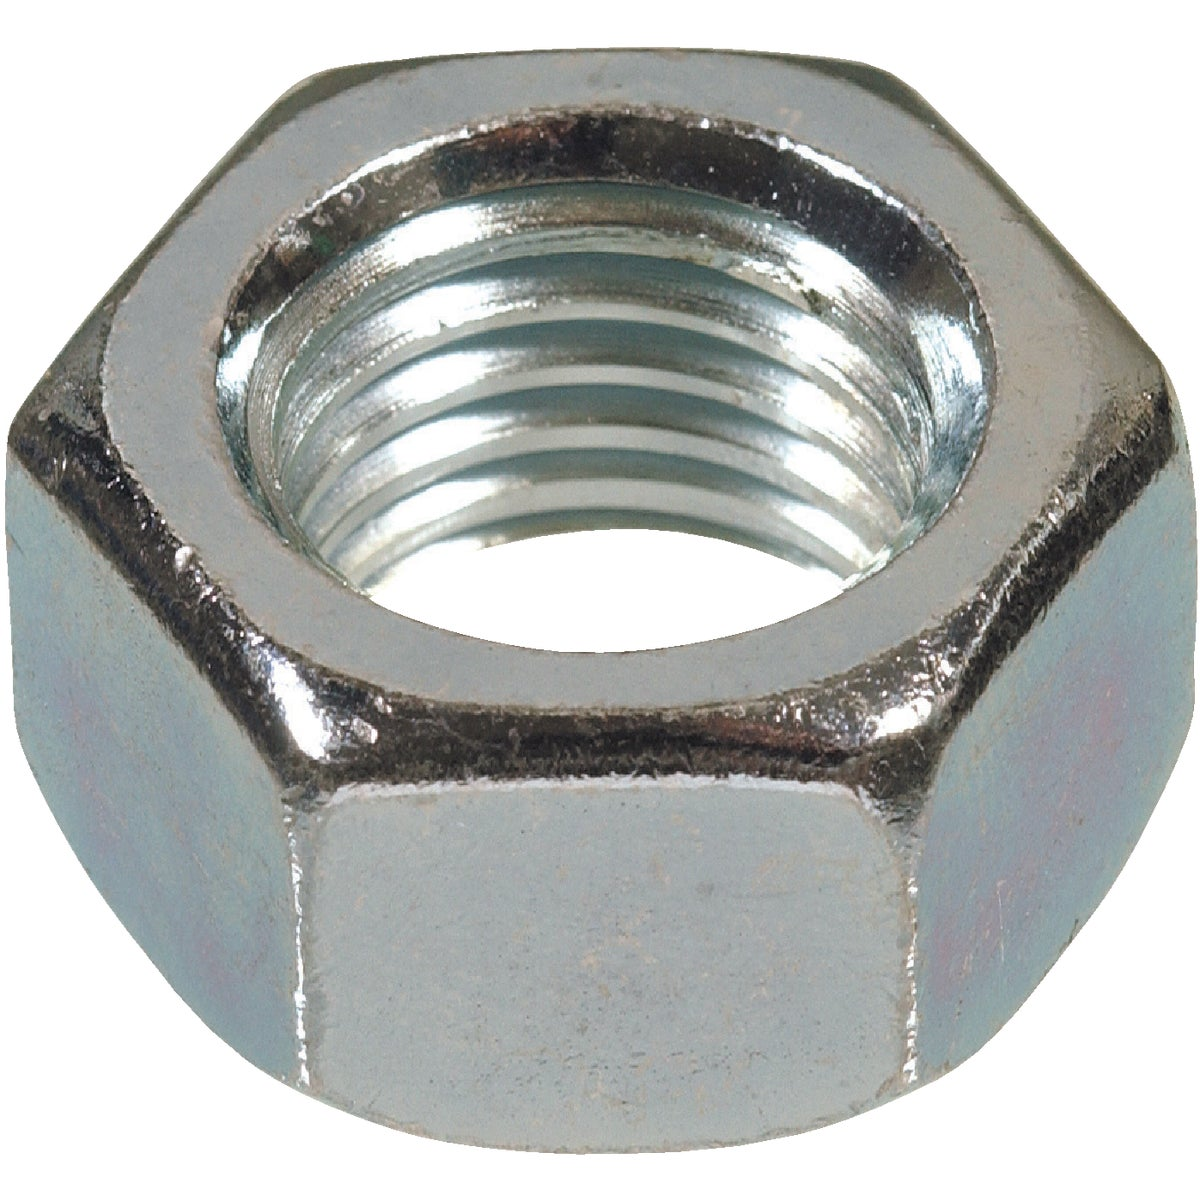 5/16-18 C THREAD HEX NUT